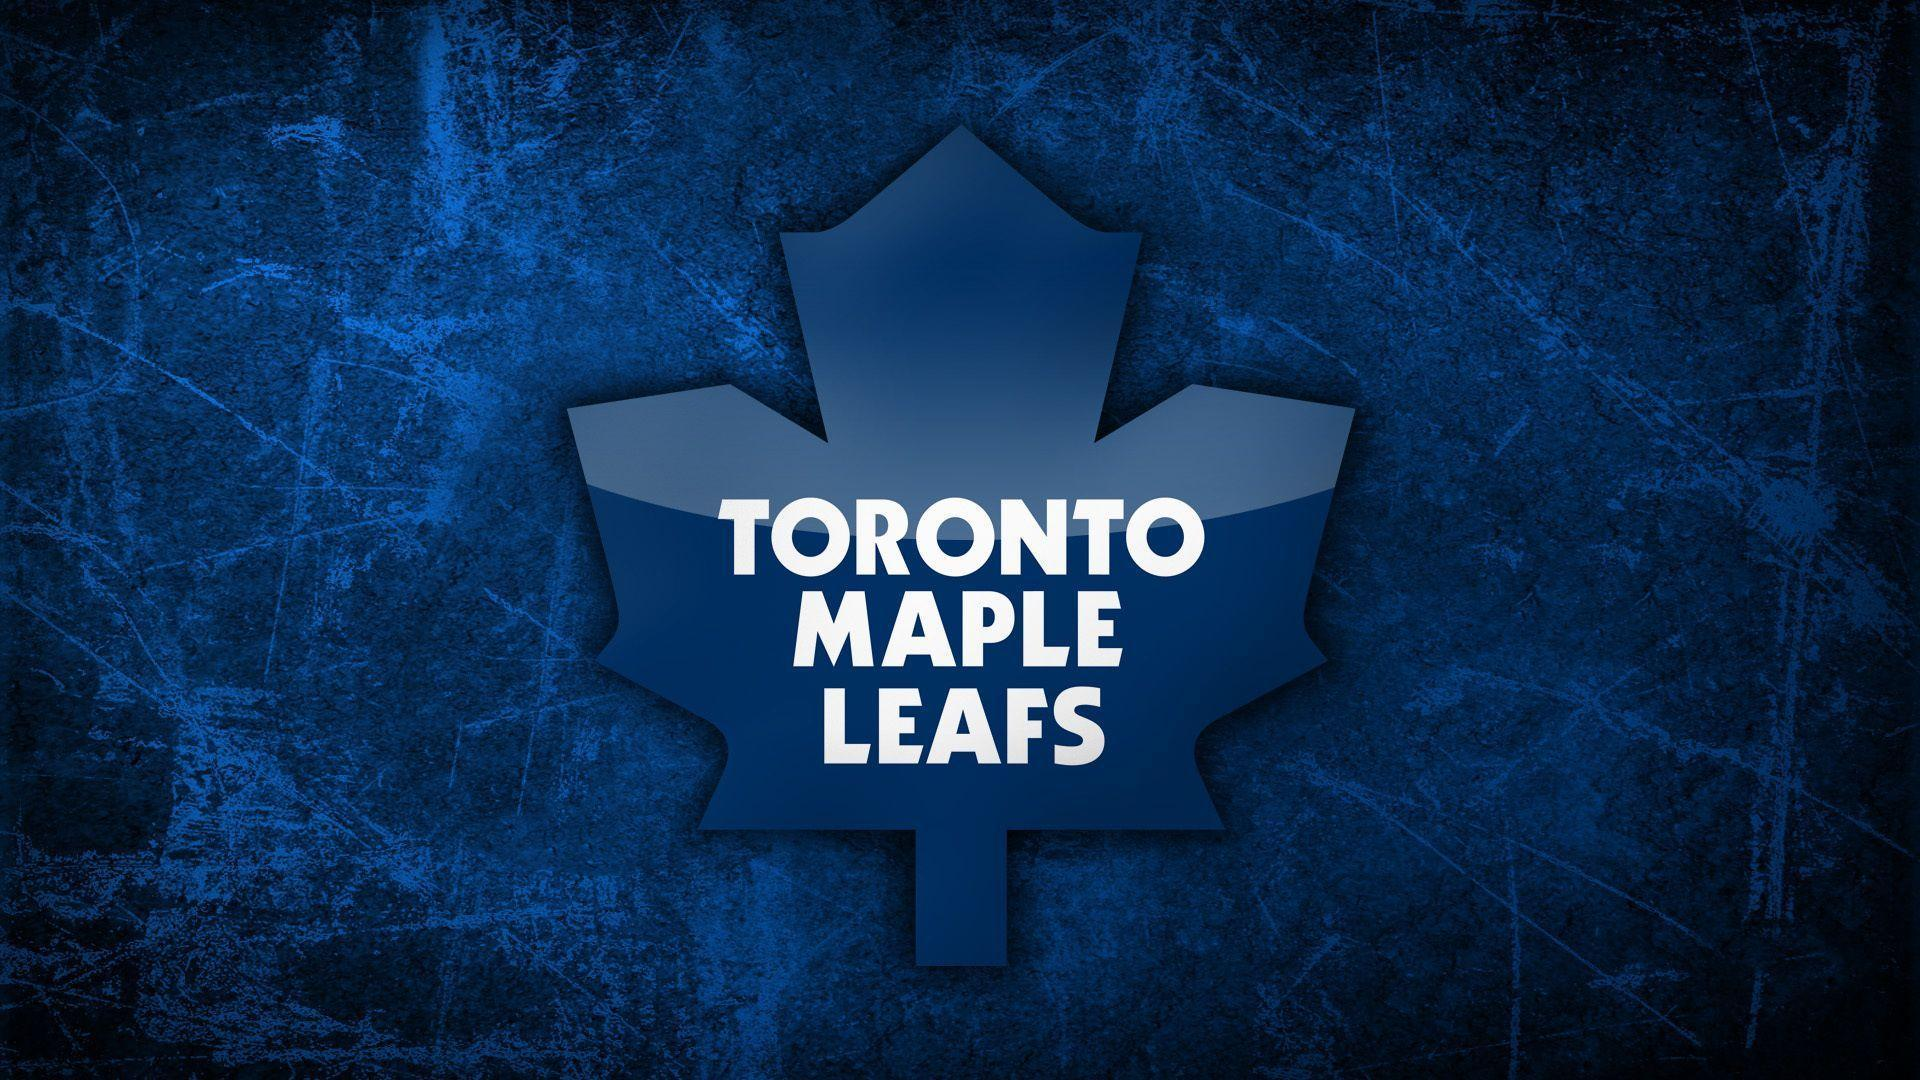 1920x1080 Toronto, Toronto, Maple Leafs, Nhl, Nhl Wallpapers and